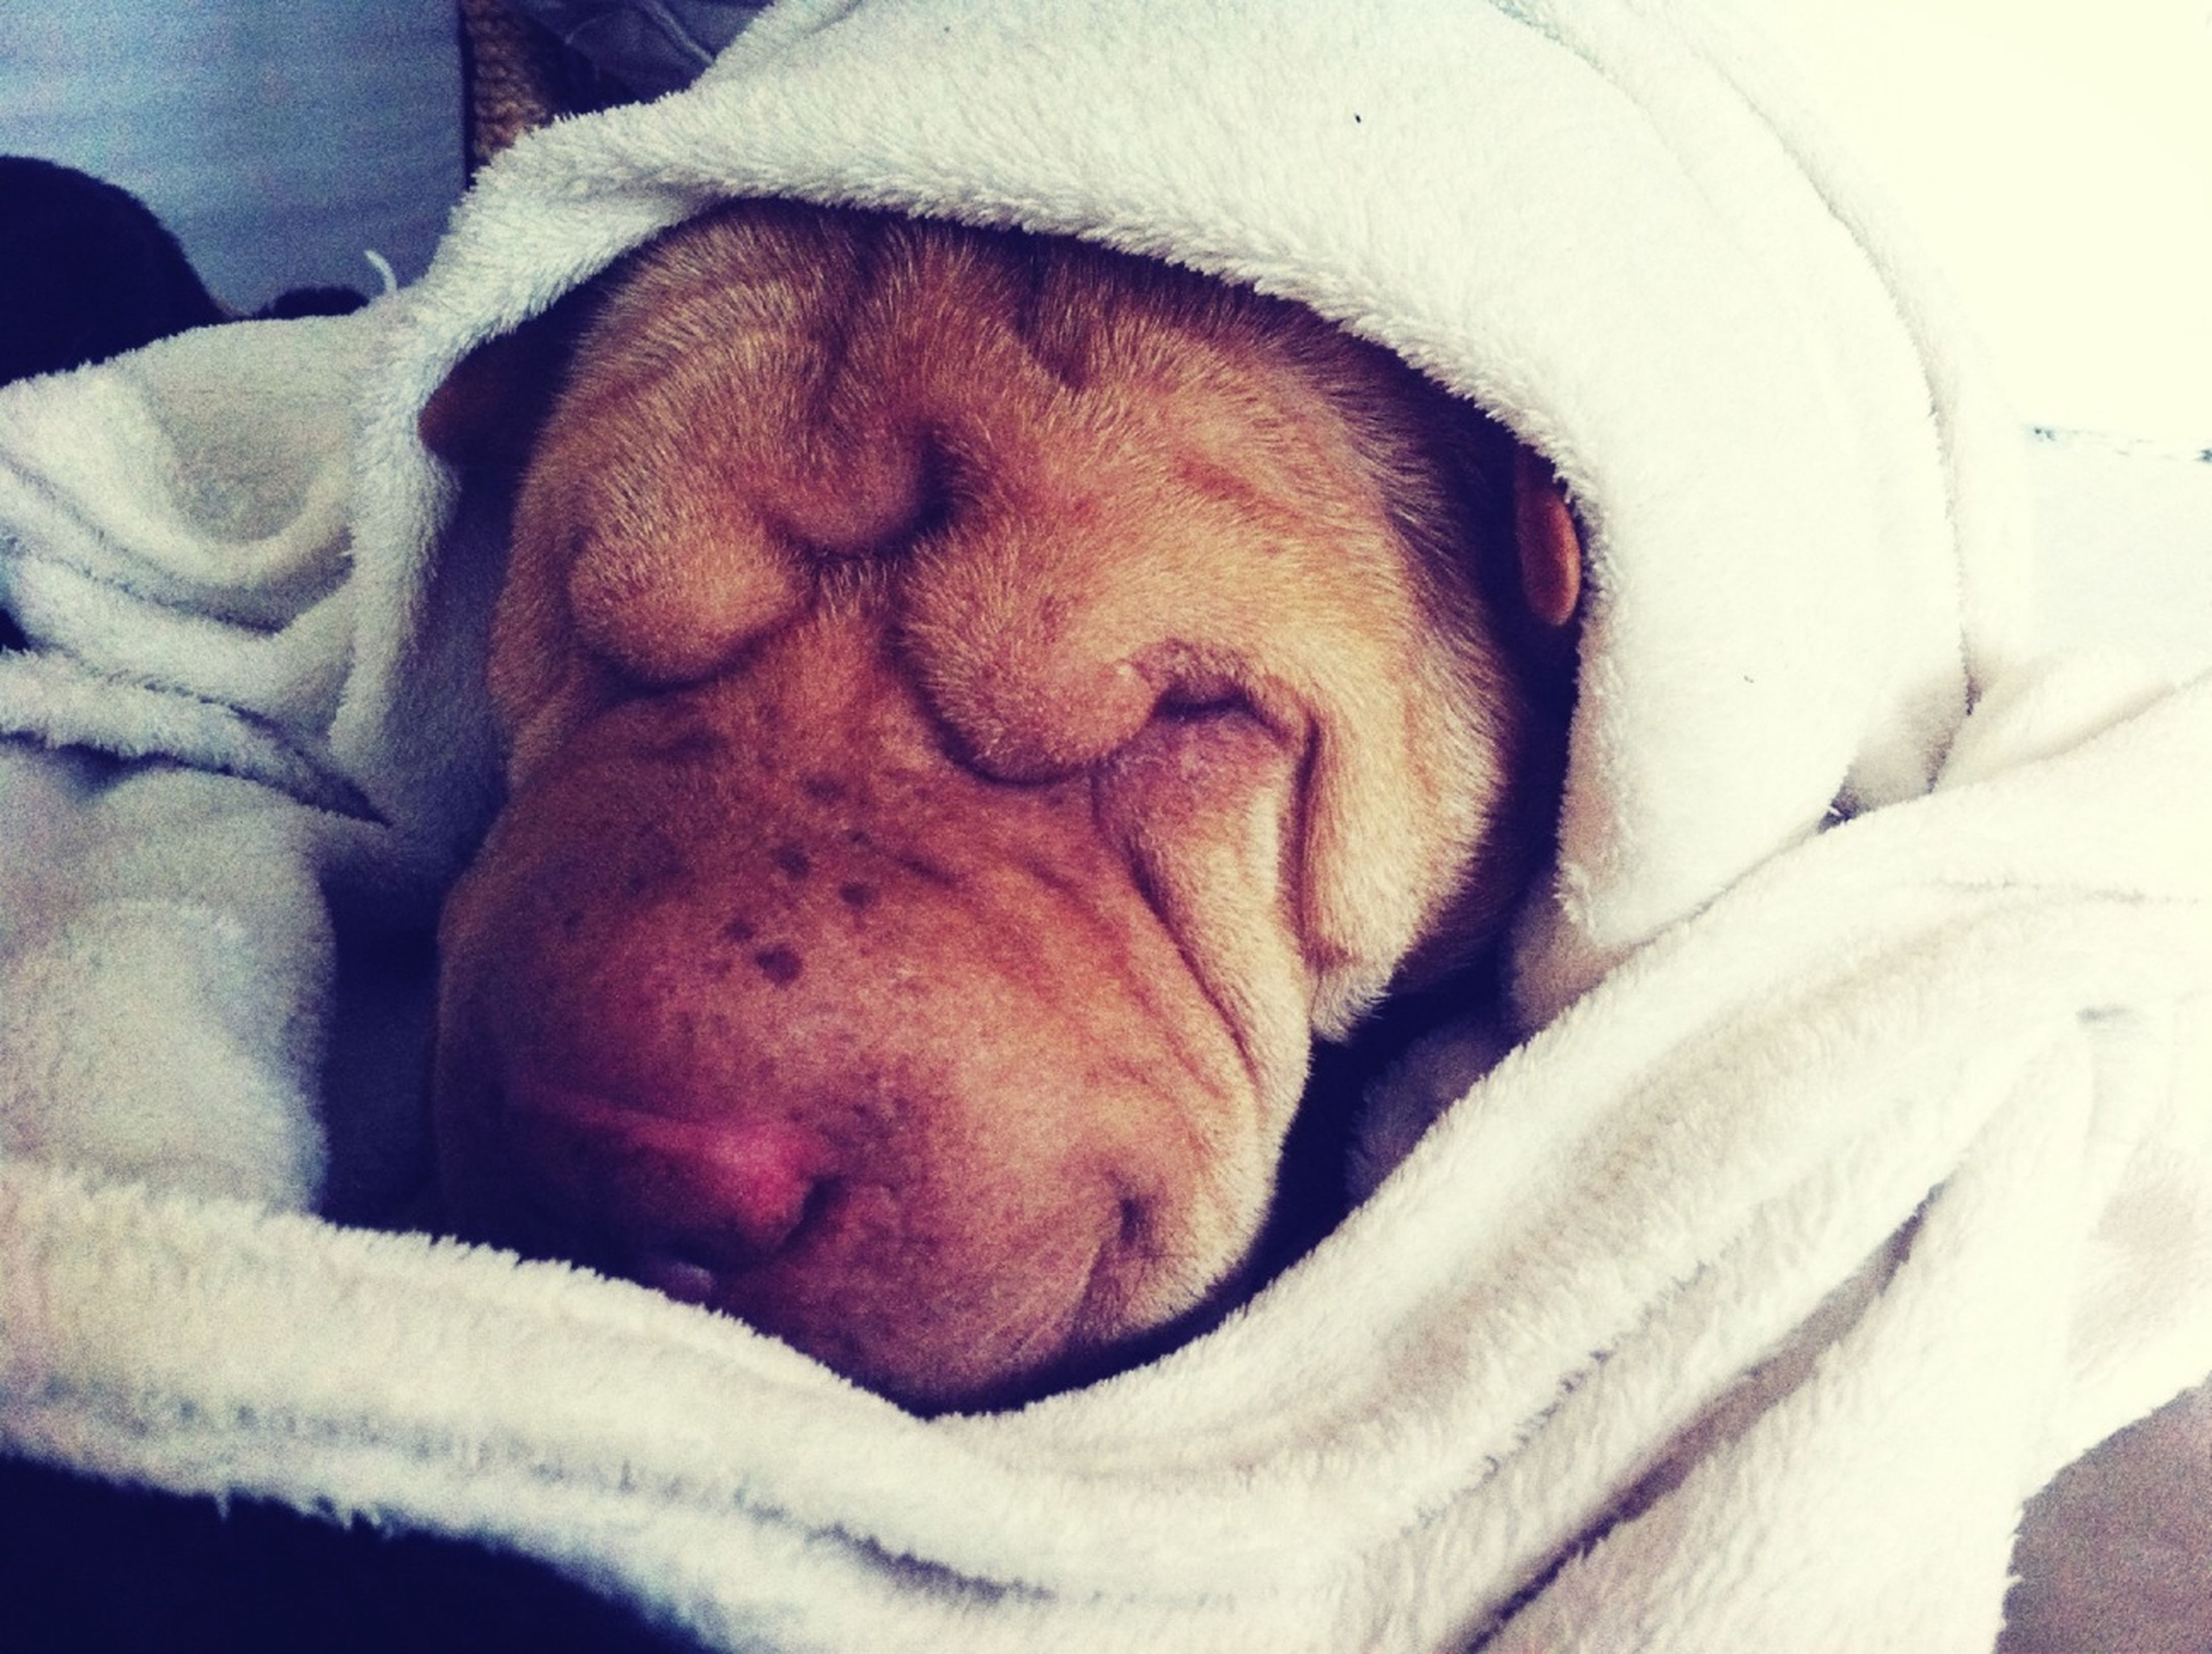 indoors, sleeping, relaxation, bed, resting, pets, animal themes, domestic animals, dog, lying down, one animal, mammal, eyes closed, close-up, high angle view, blanket, comfortable, sheet, home interior, bedroom